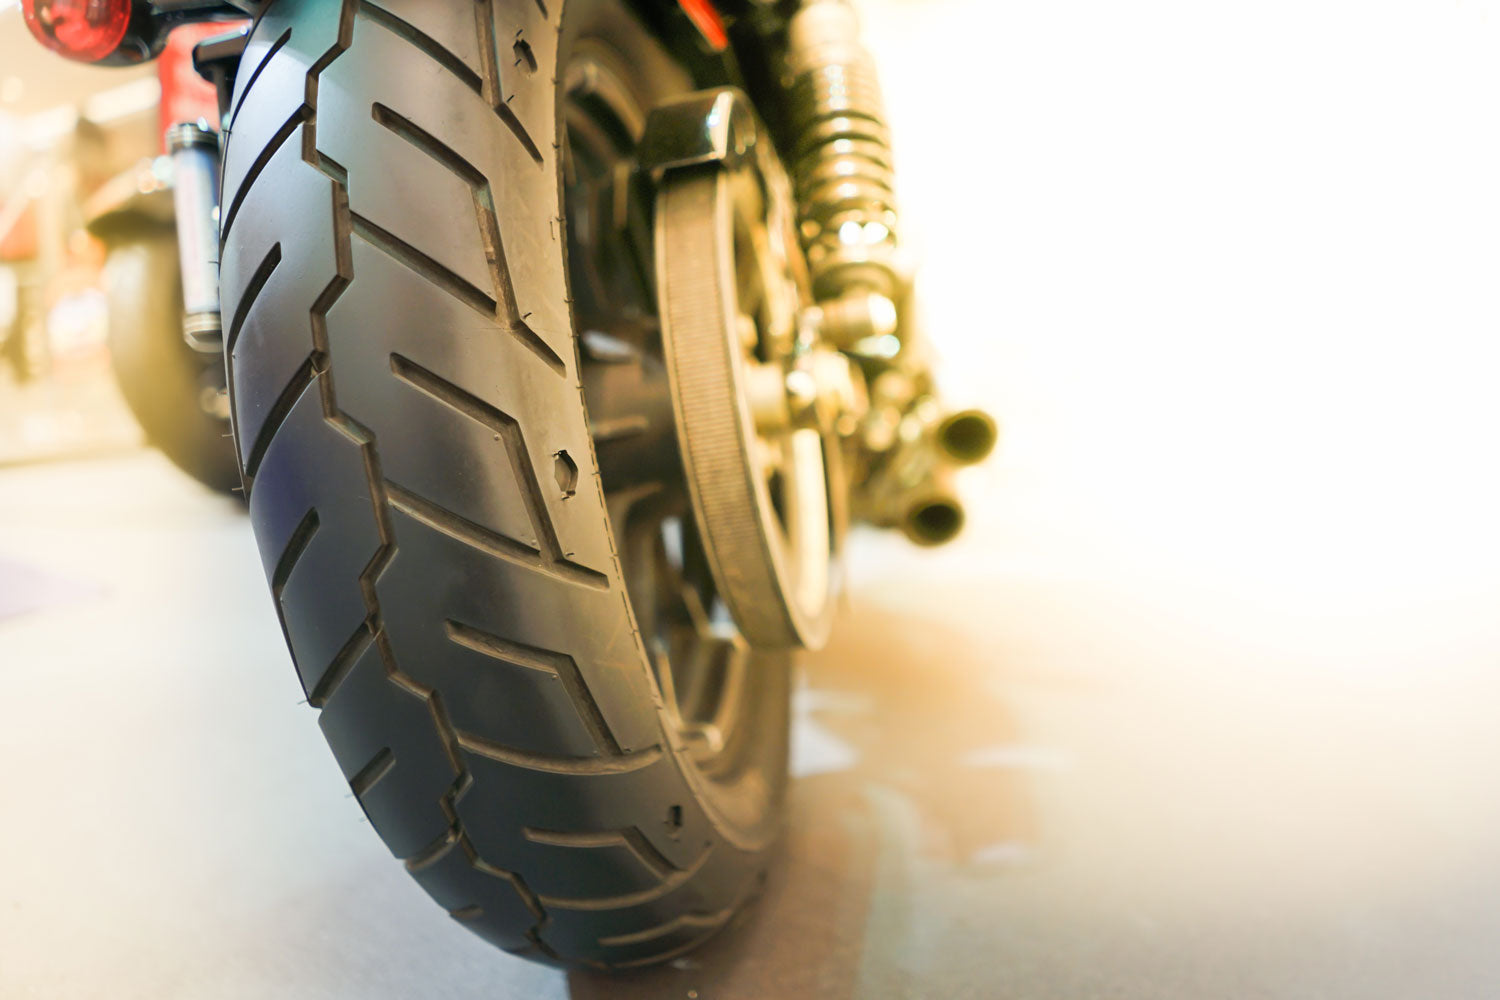 Sport-touring Tires or Hyper Sport Tires? You Decide